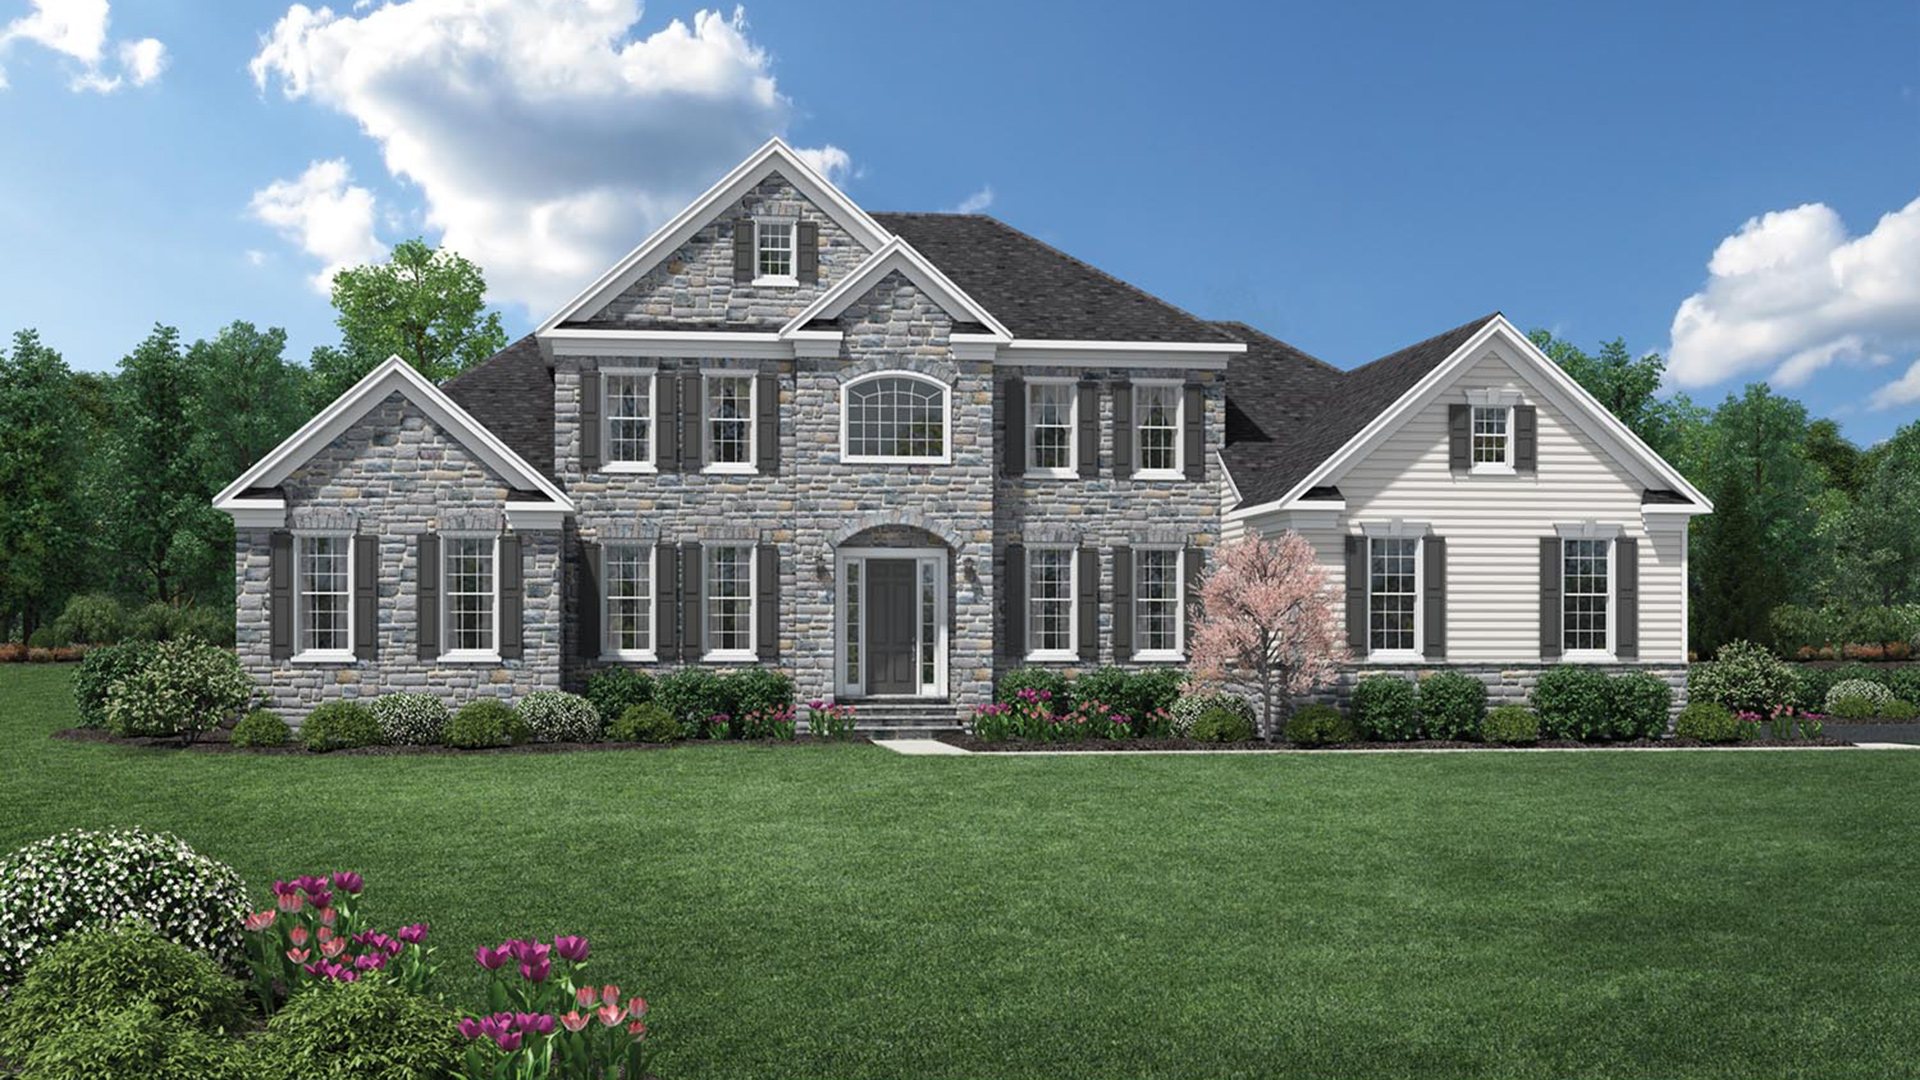 Liseter the bryn mawr collection the covington home design for The covington